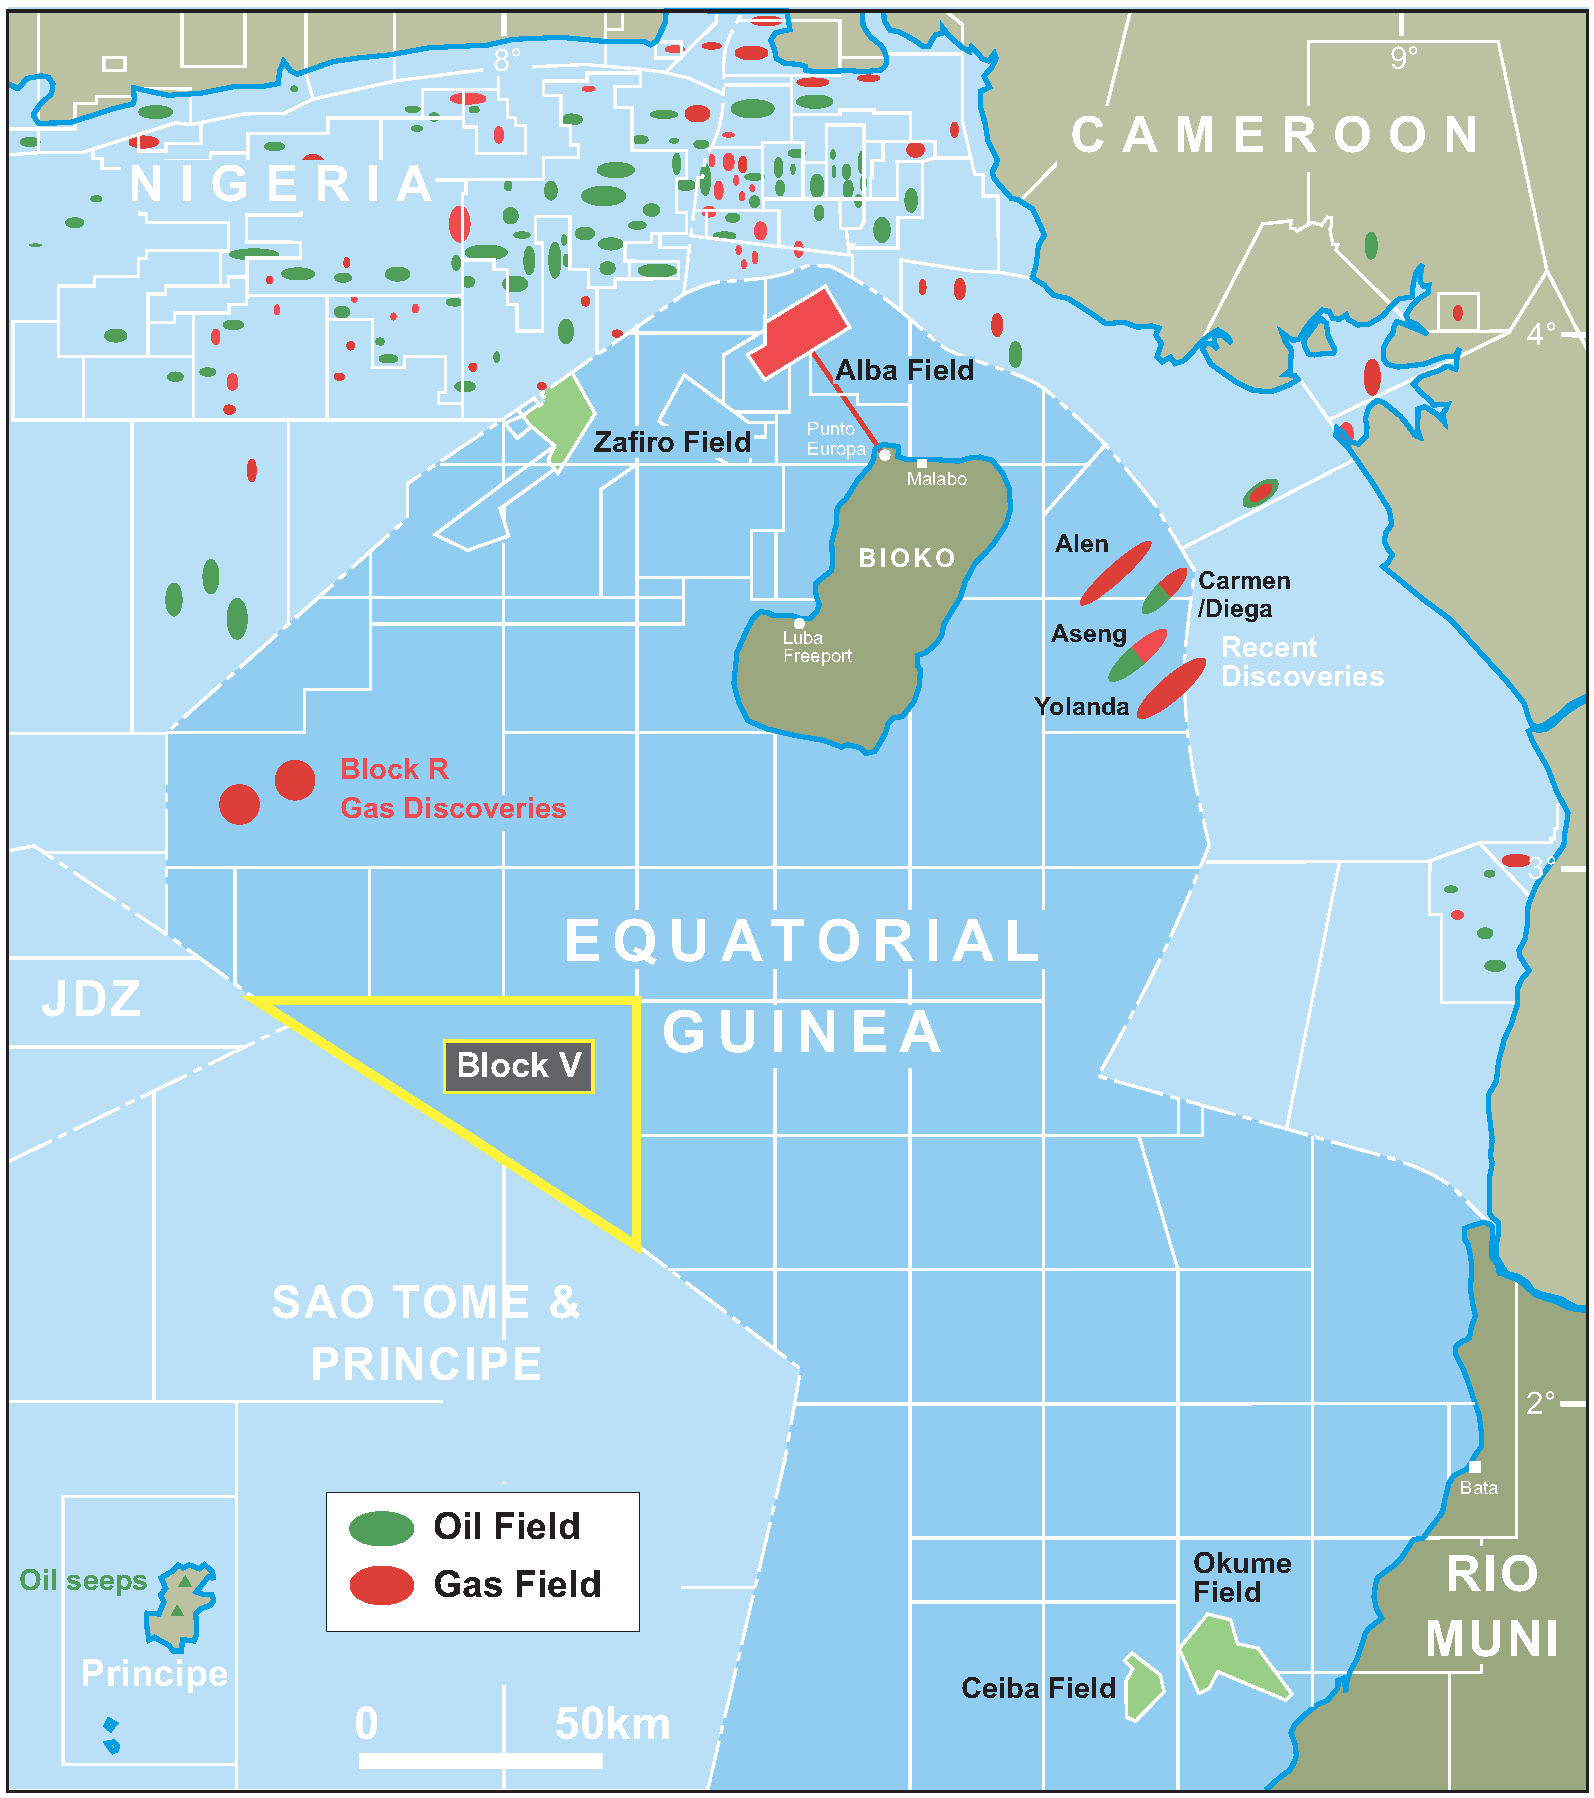 Equatorial Guinea offshore oil gas 15941798 MapPorn